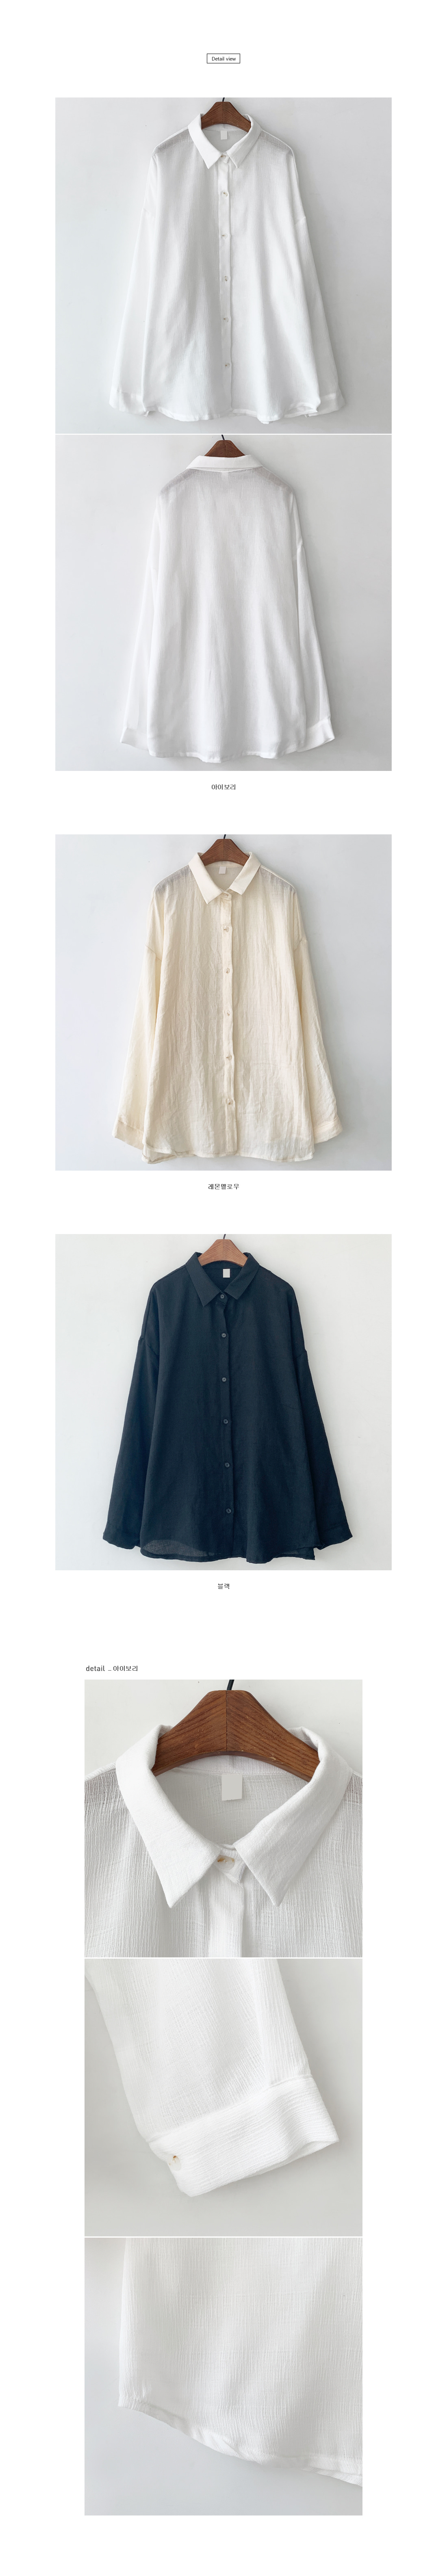 Blank loose fit shirt